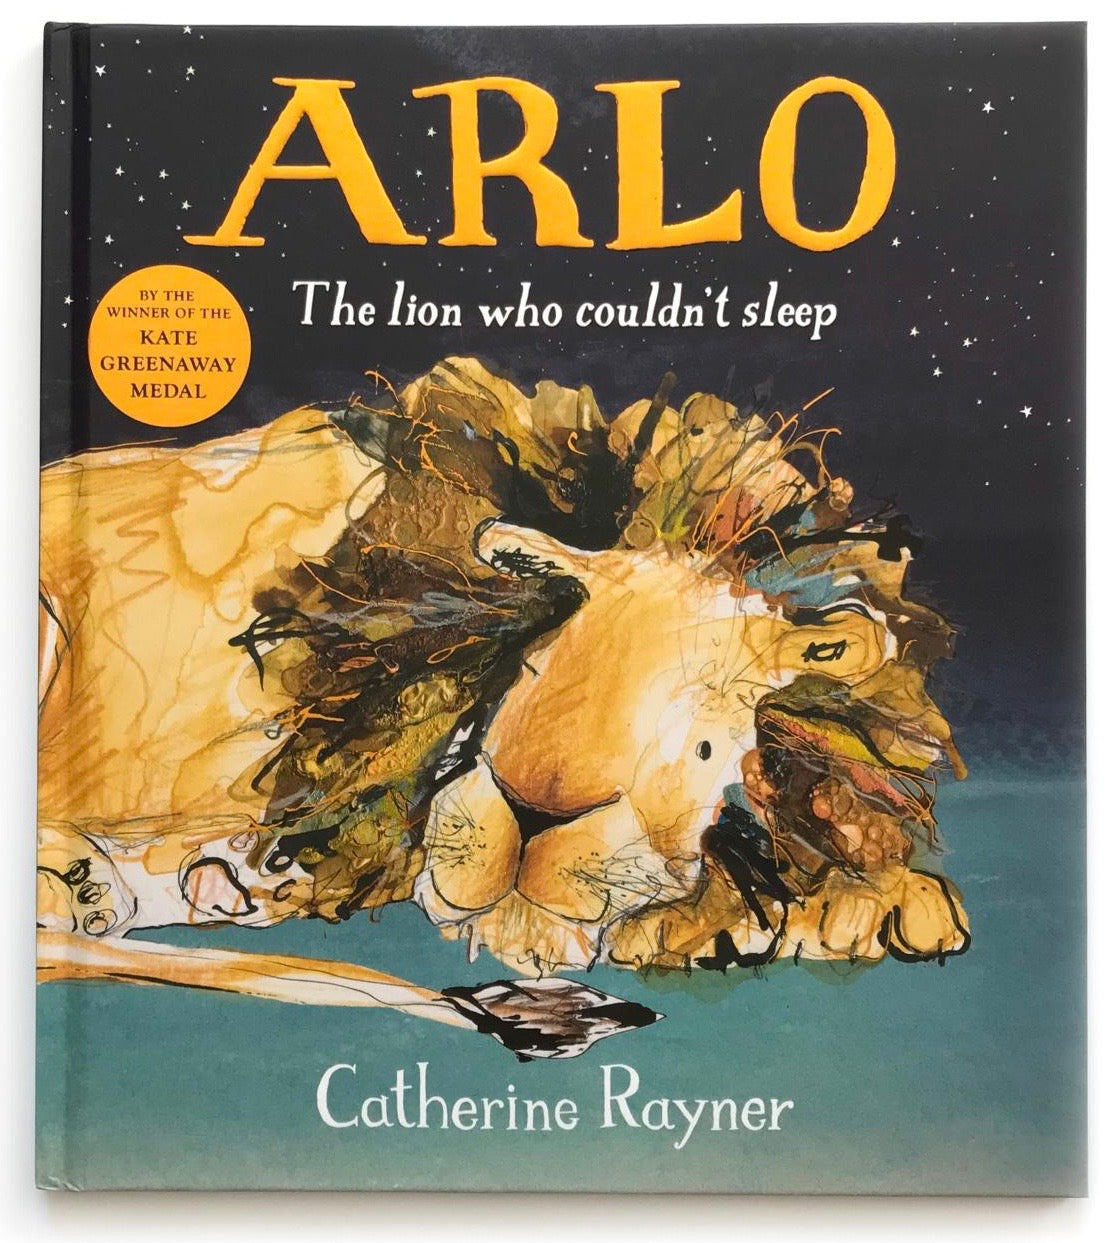 Arlo The Lion Who Couldn't Sleep